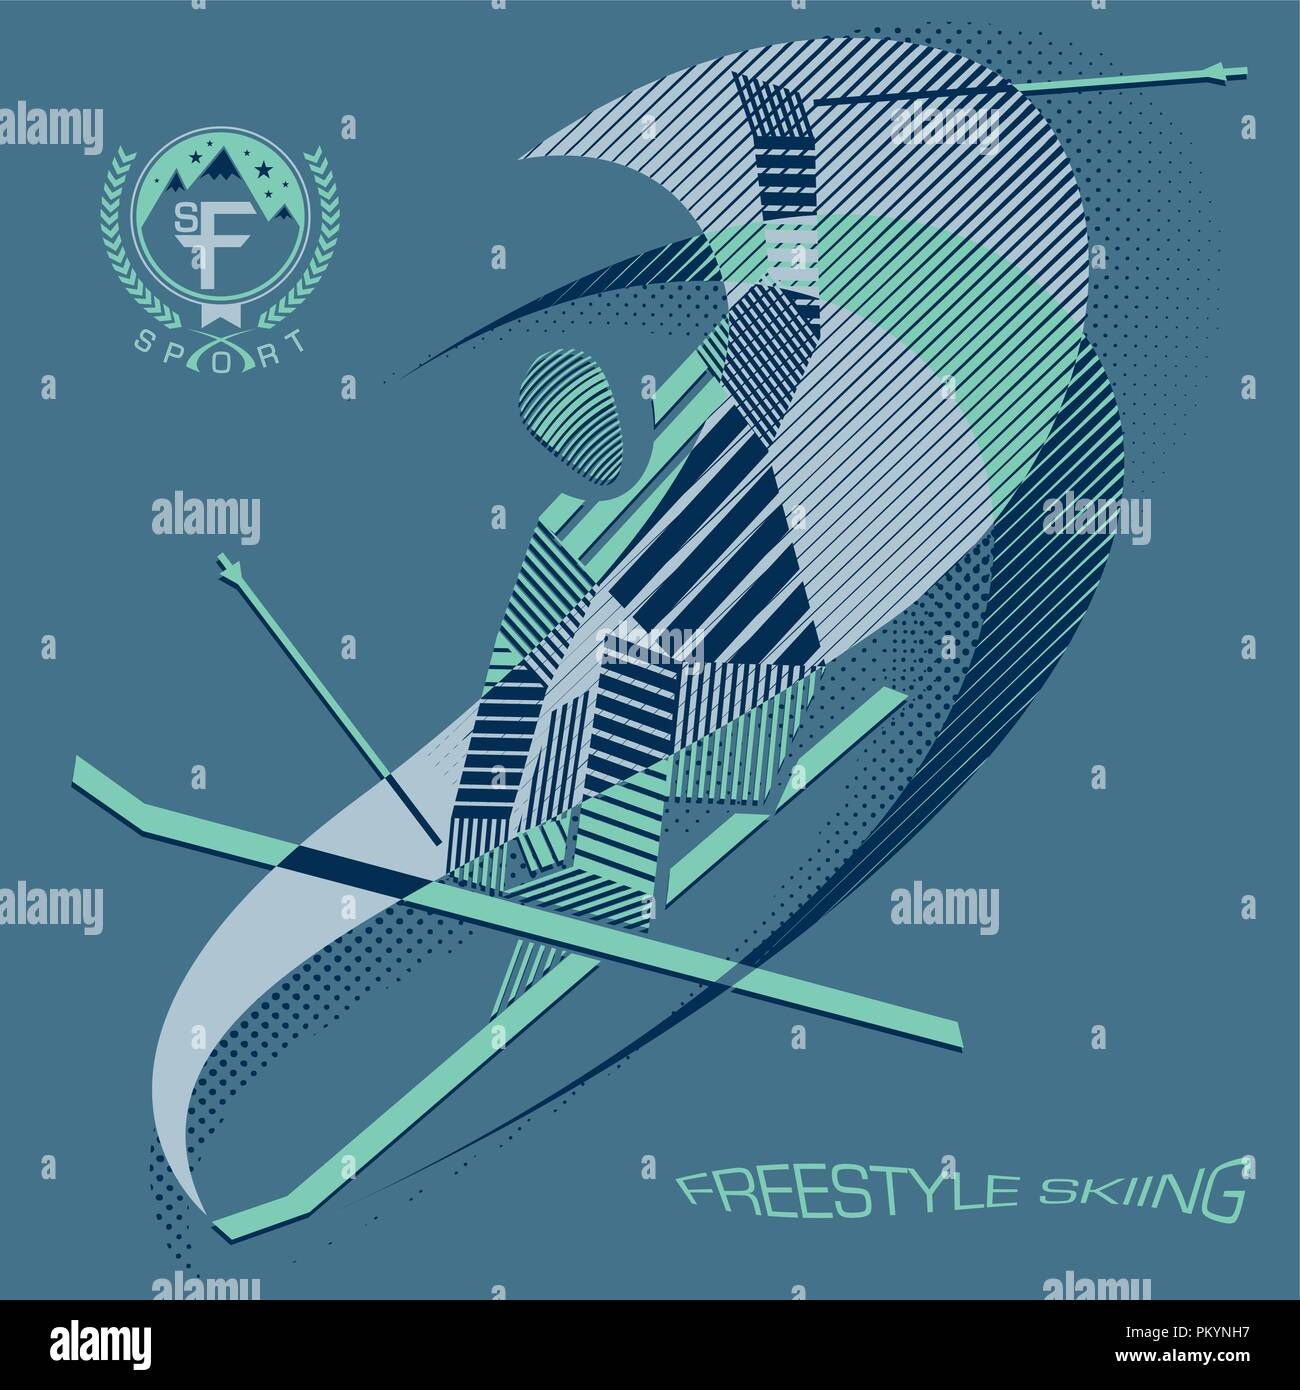 Stripy freestyle skier in action - Stock Vector